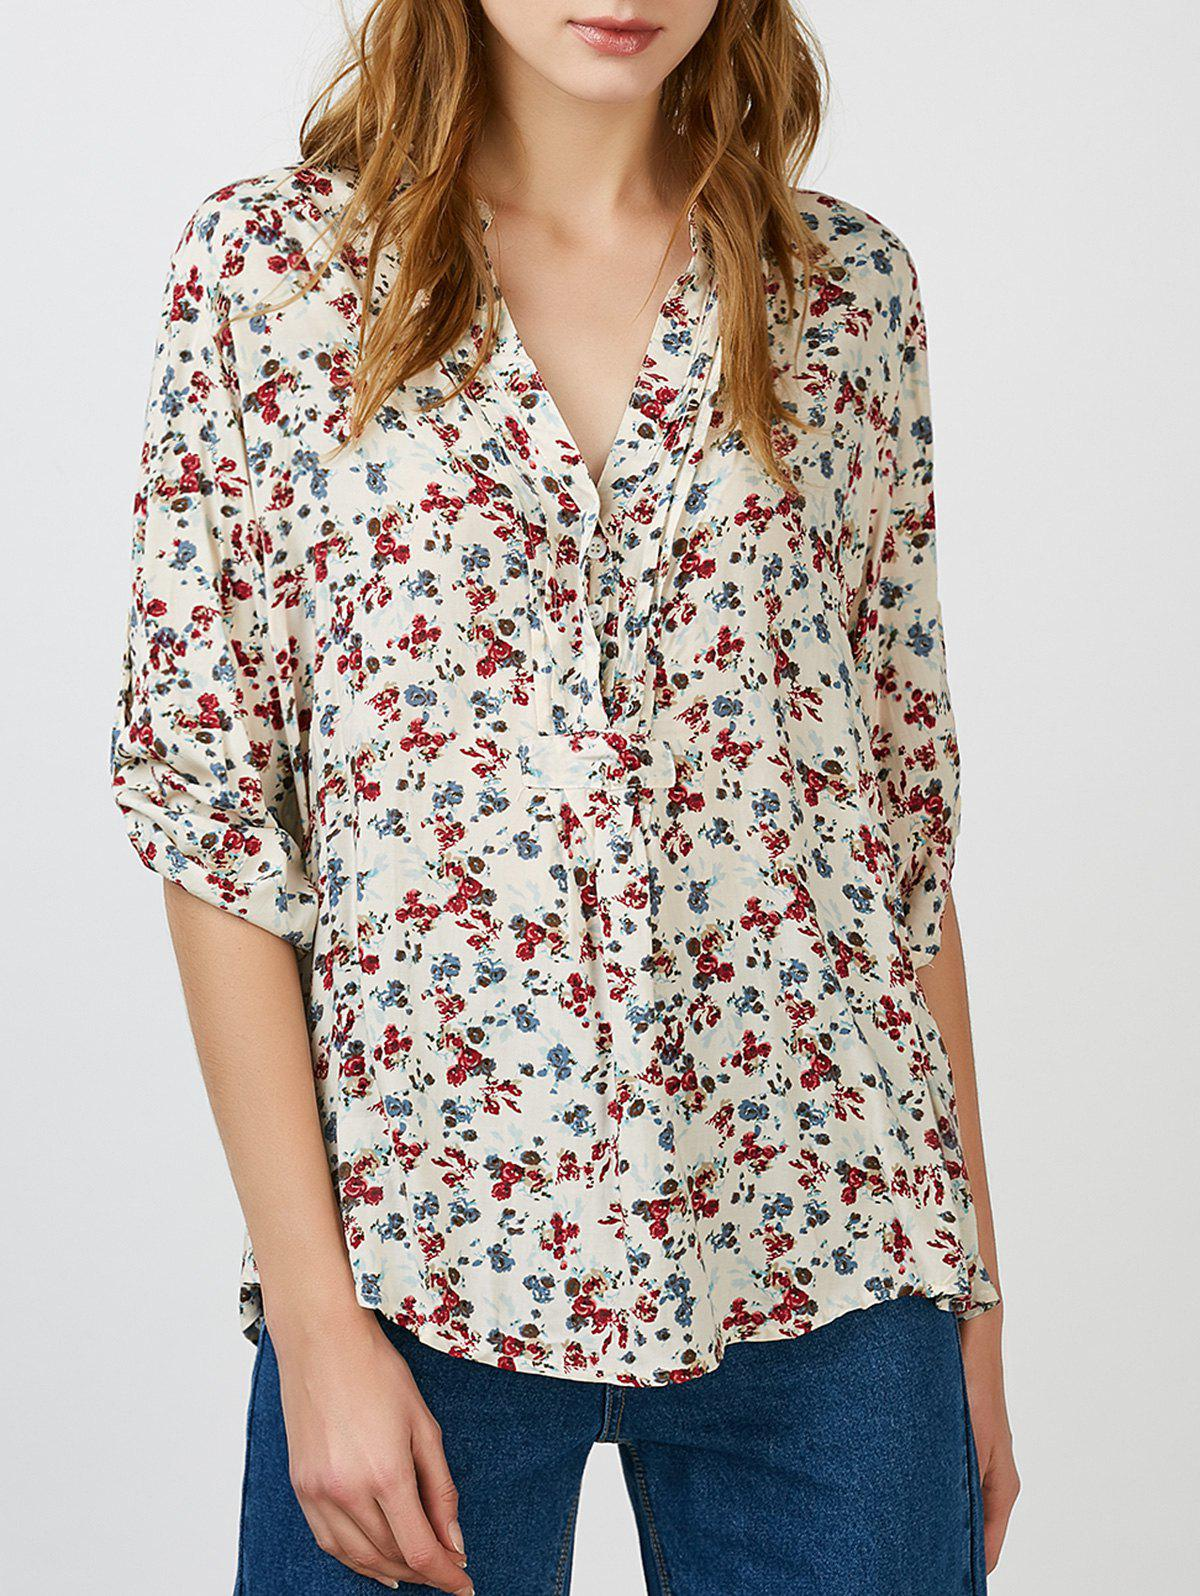 Floral V Neck Blouse - COLORMIX XL